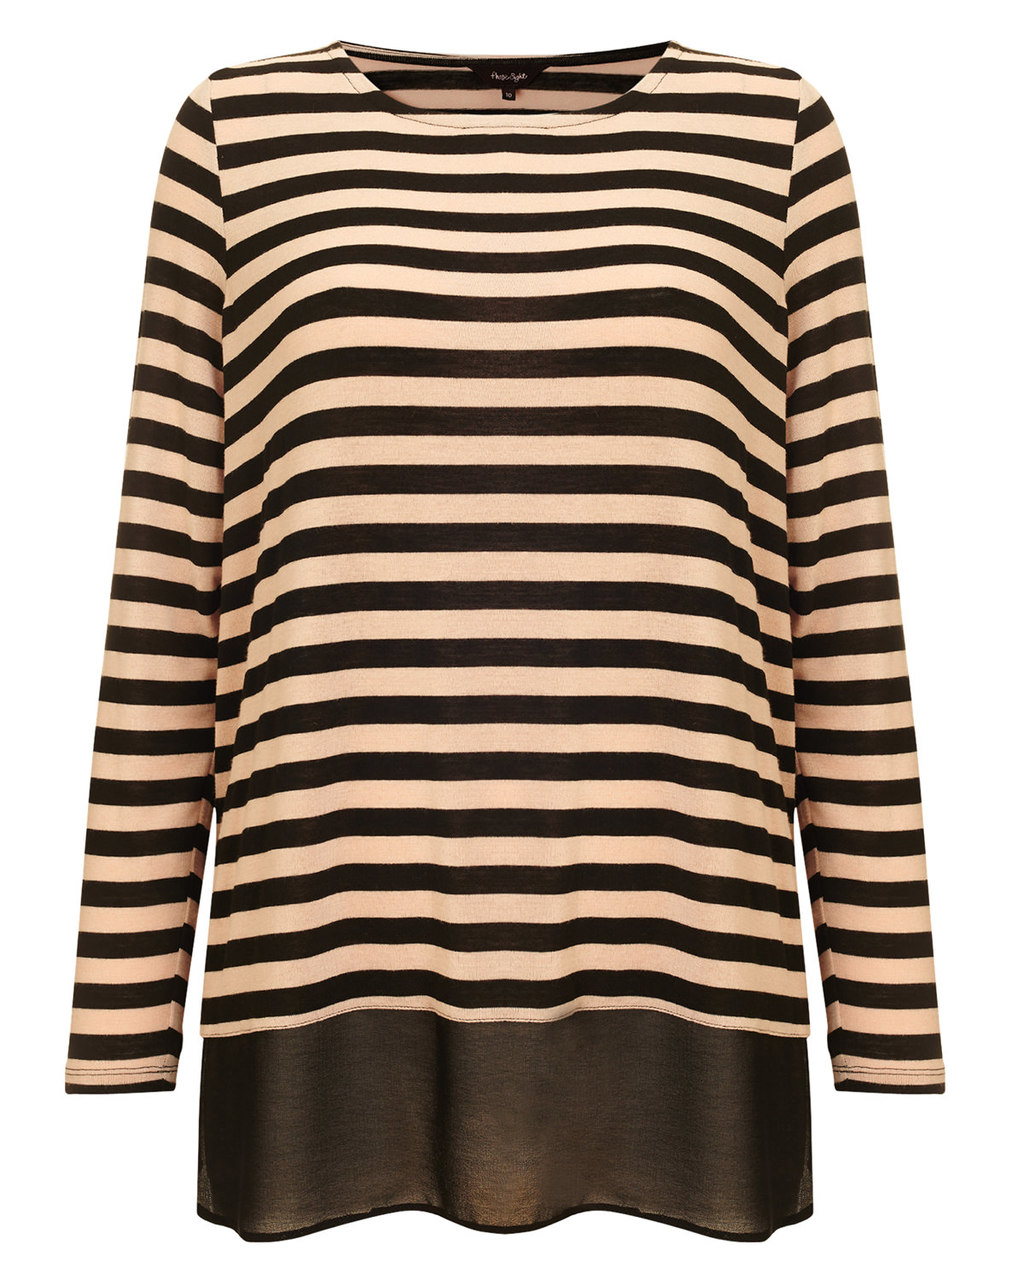 Sandie Stripe Top - neckline: round neck; pattern: horizontal stripes; length: below the bottom; style: t-shirt; secondary colour: chocolate brown; predominant colour: stone; occasions: casual, creative work; fibres: polyester/polyamide - stretch; fit: loose; sleeve length: long sleeve; sleeve style: standard; pattern type: fabric; pattern size: light/subtle; texture group: jersey - stretchy/drapey; season: a/w 2015; wardrobe: basic